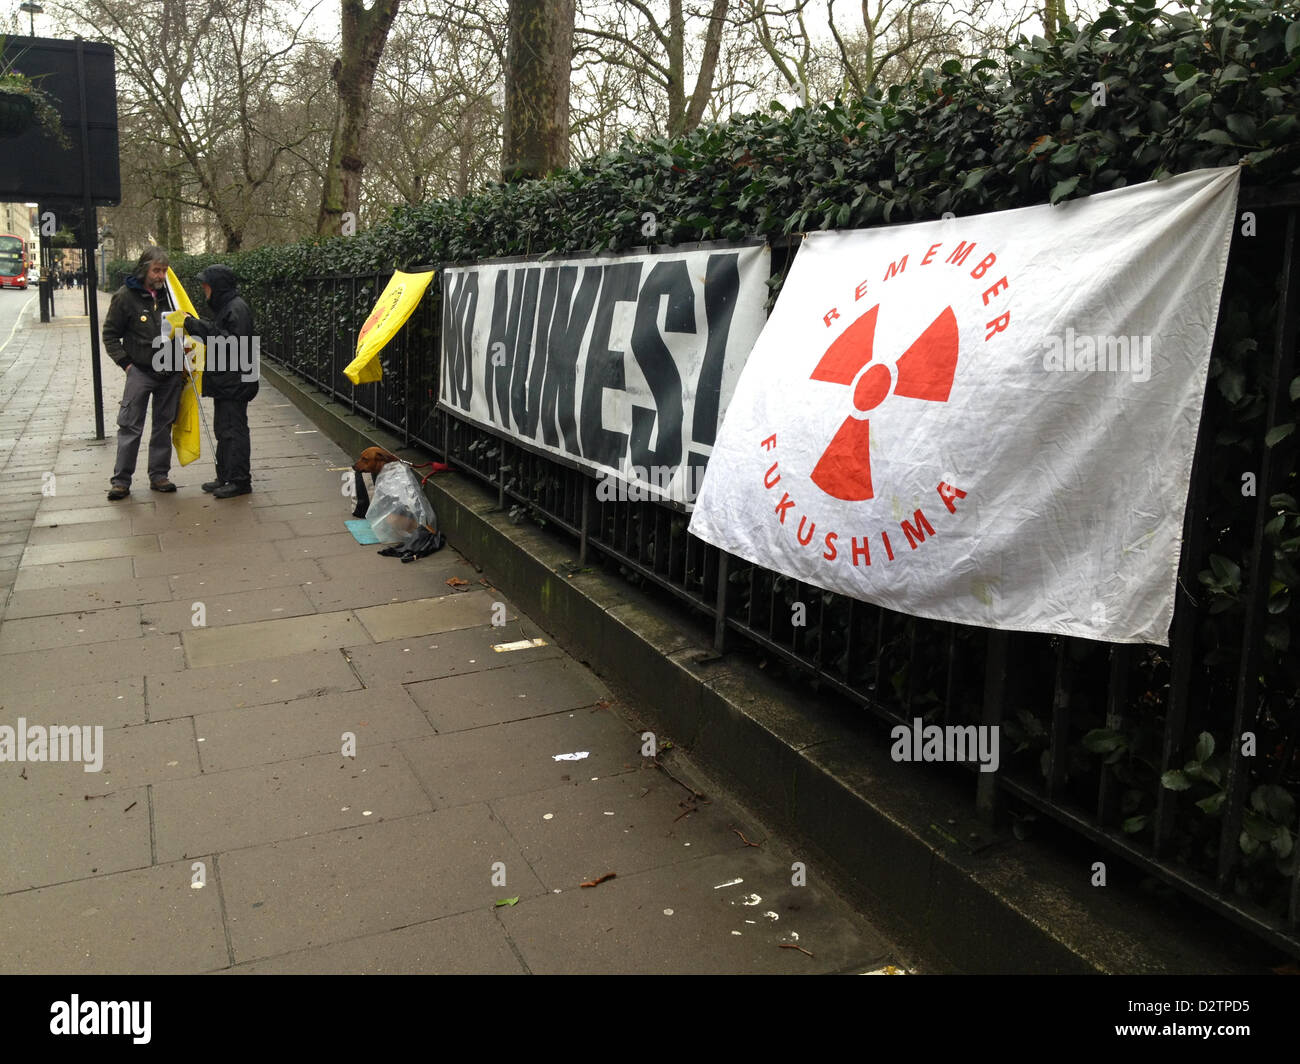 London, UK, 1st February 2013. Anti nuclear power demonstration in front of the Japanese embassy on Piccadilly. - Stock Image